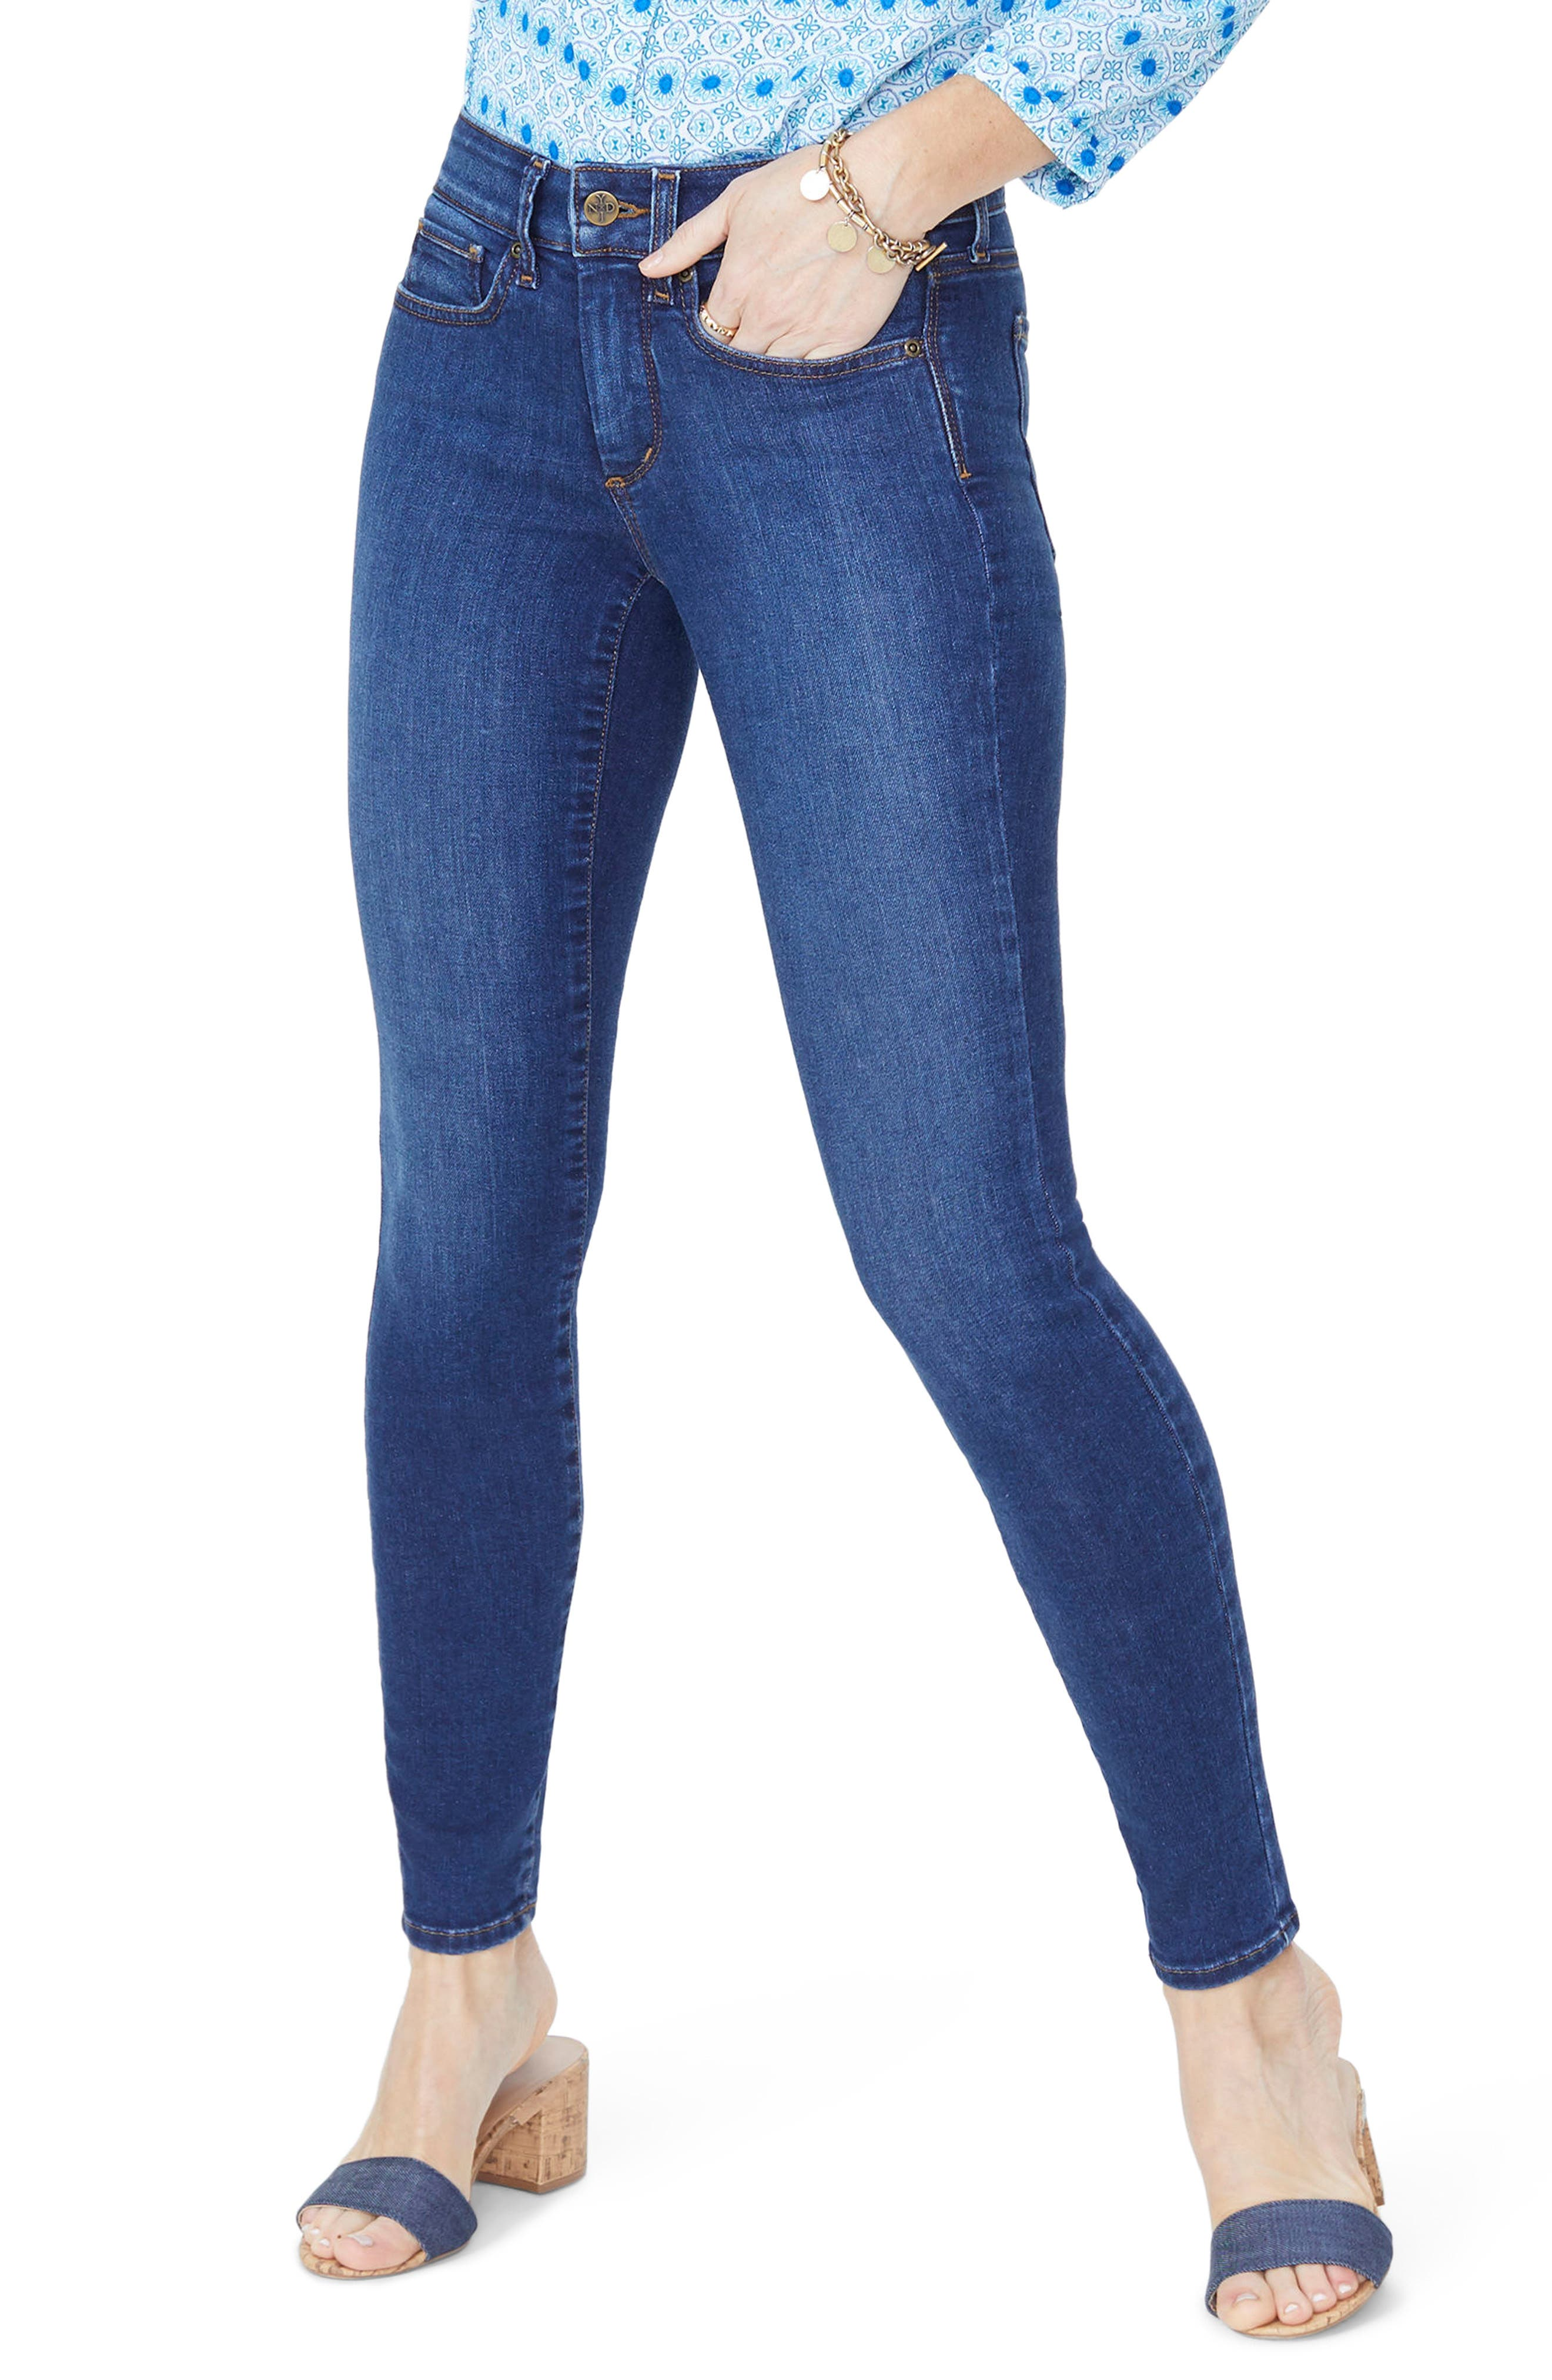 Ami Stretch Skinny Jeans,                             Main thumbnail 1, color,                             Cooper